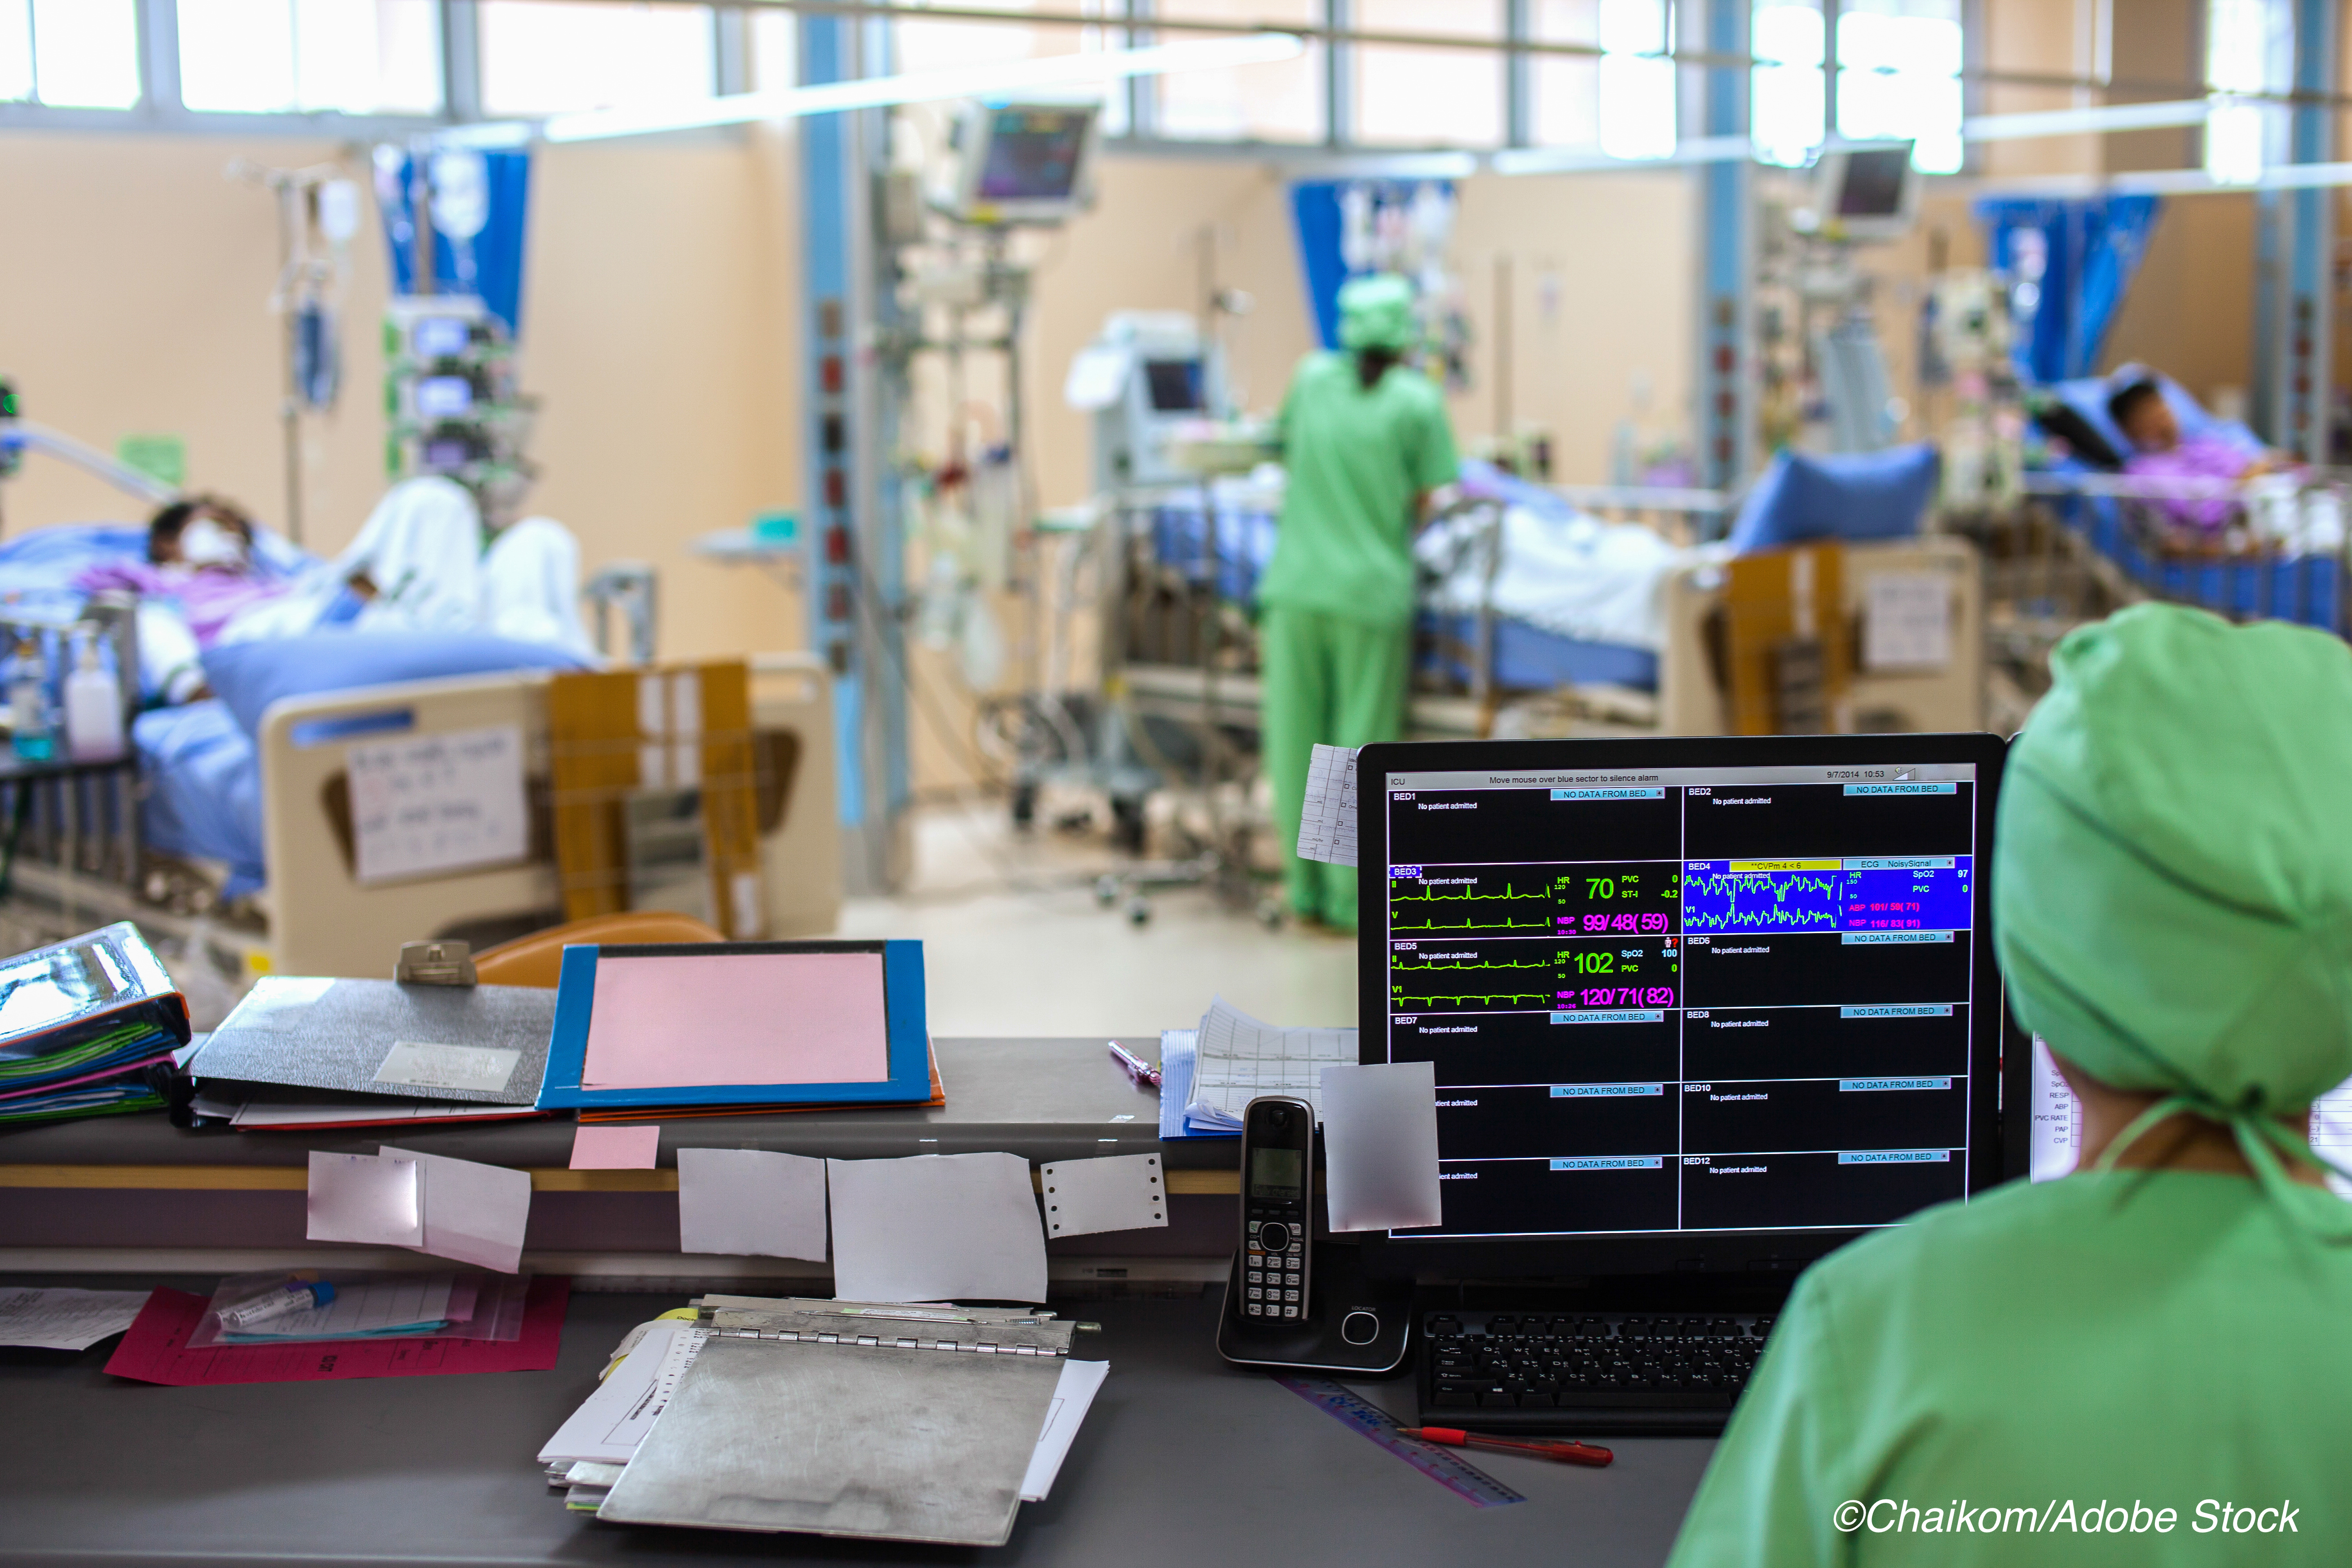 Time-Limited Trials May Reduce Non-Beneficial ICU Care